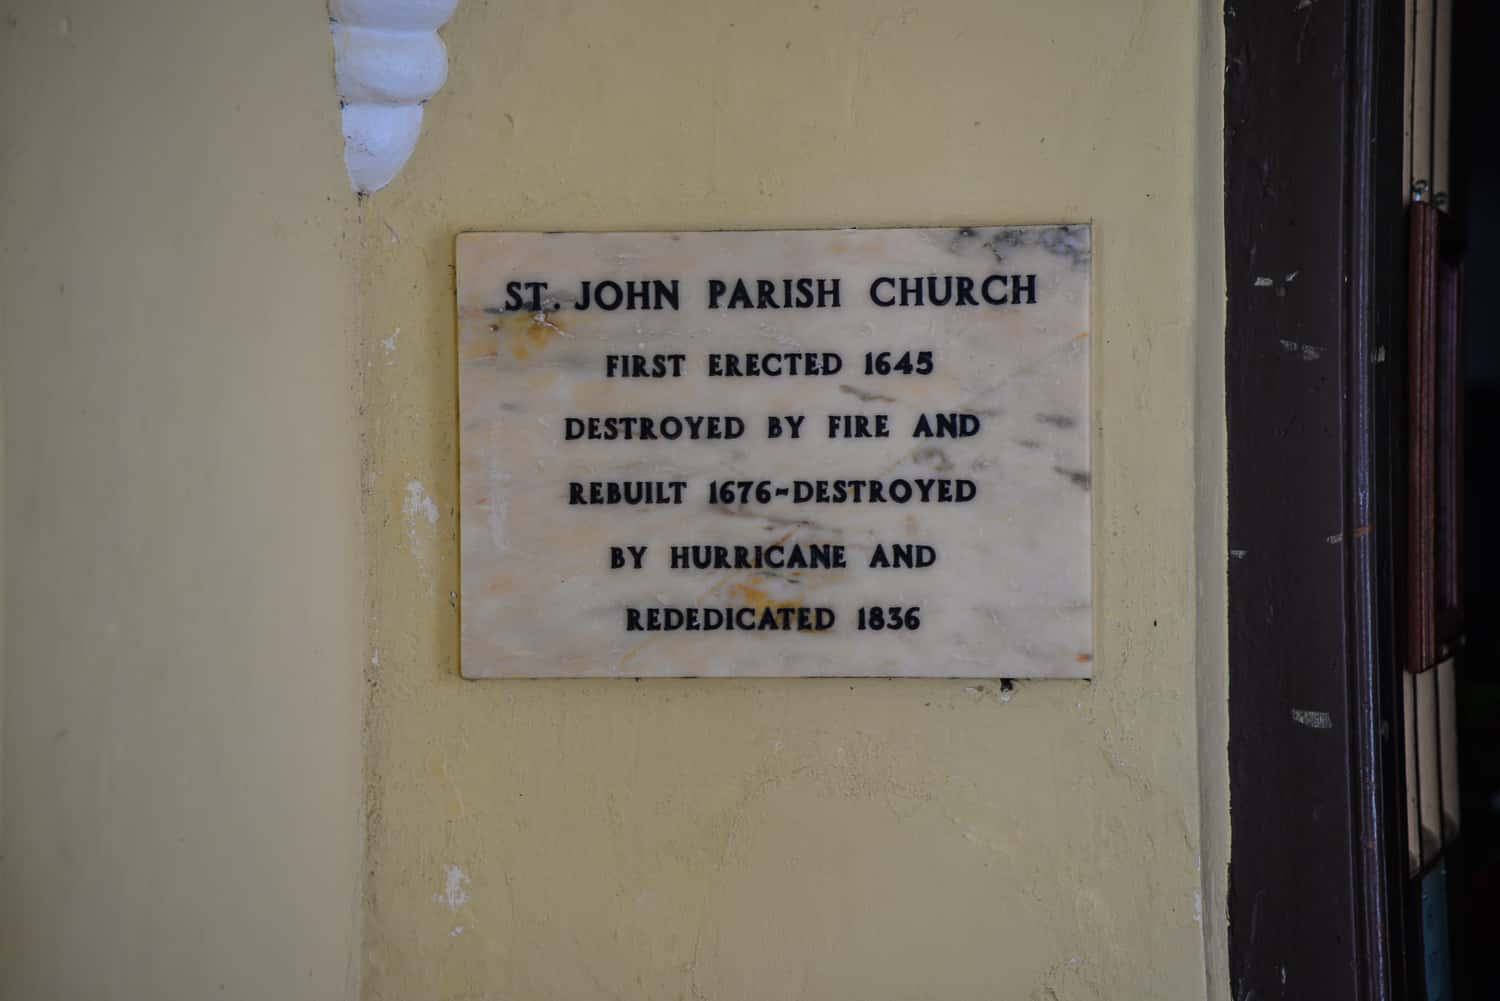 This church seems to have ad a pretty checkered history. The locals, however, can be pretty persistent.